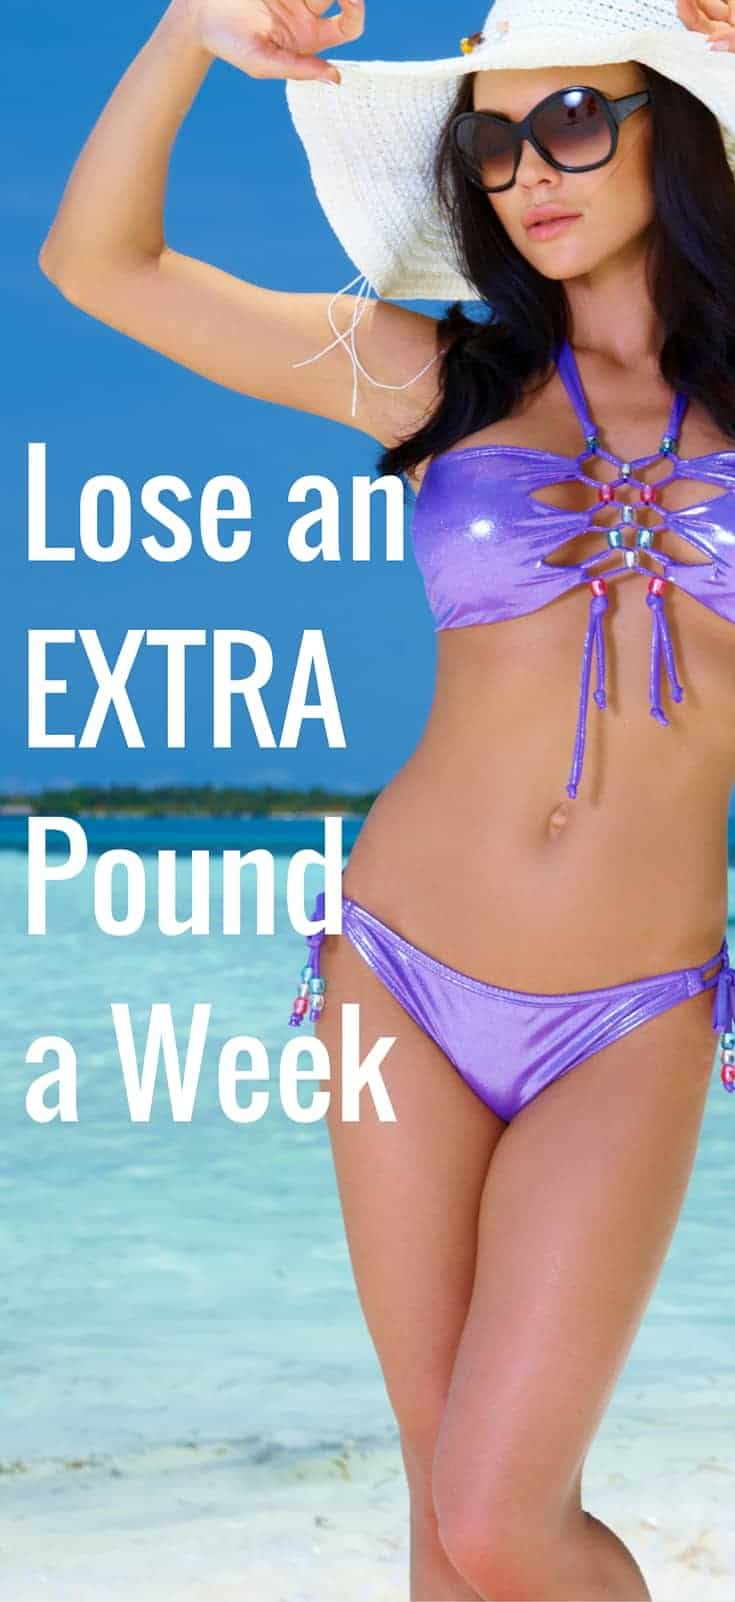 78 Pounds Lost Morgan Scrutinizes Her Calories To Overcome A Weight Loss Plateau